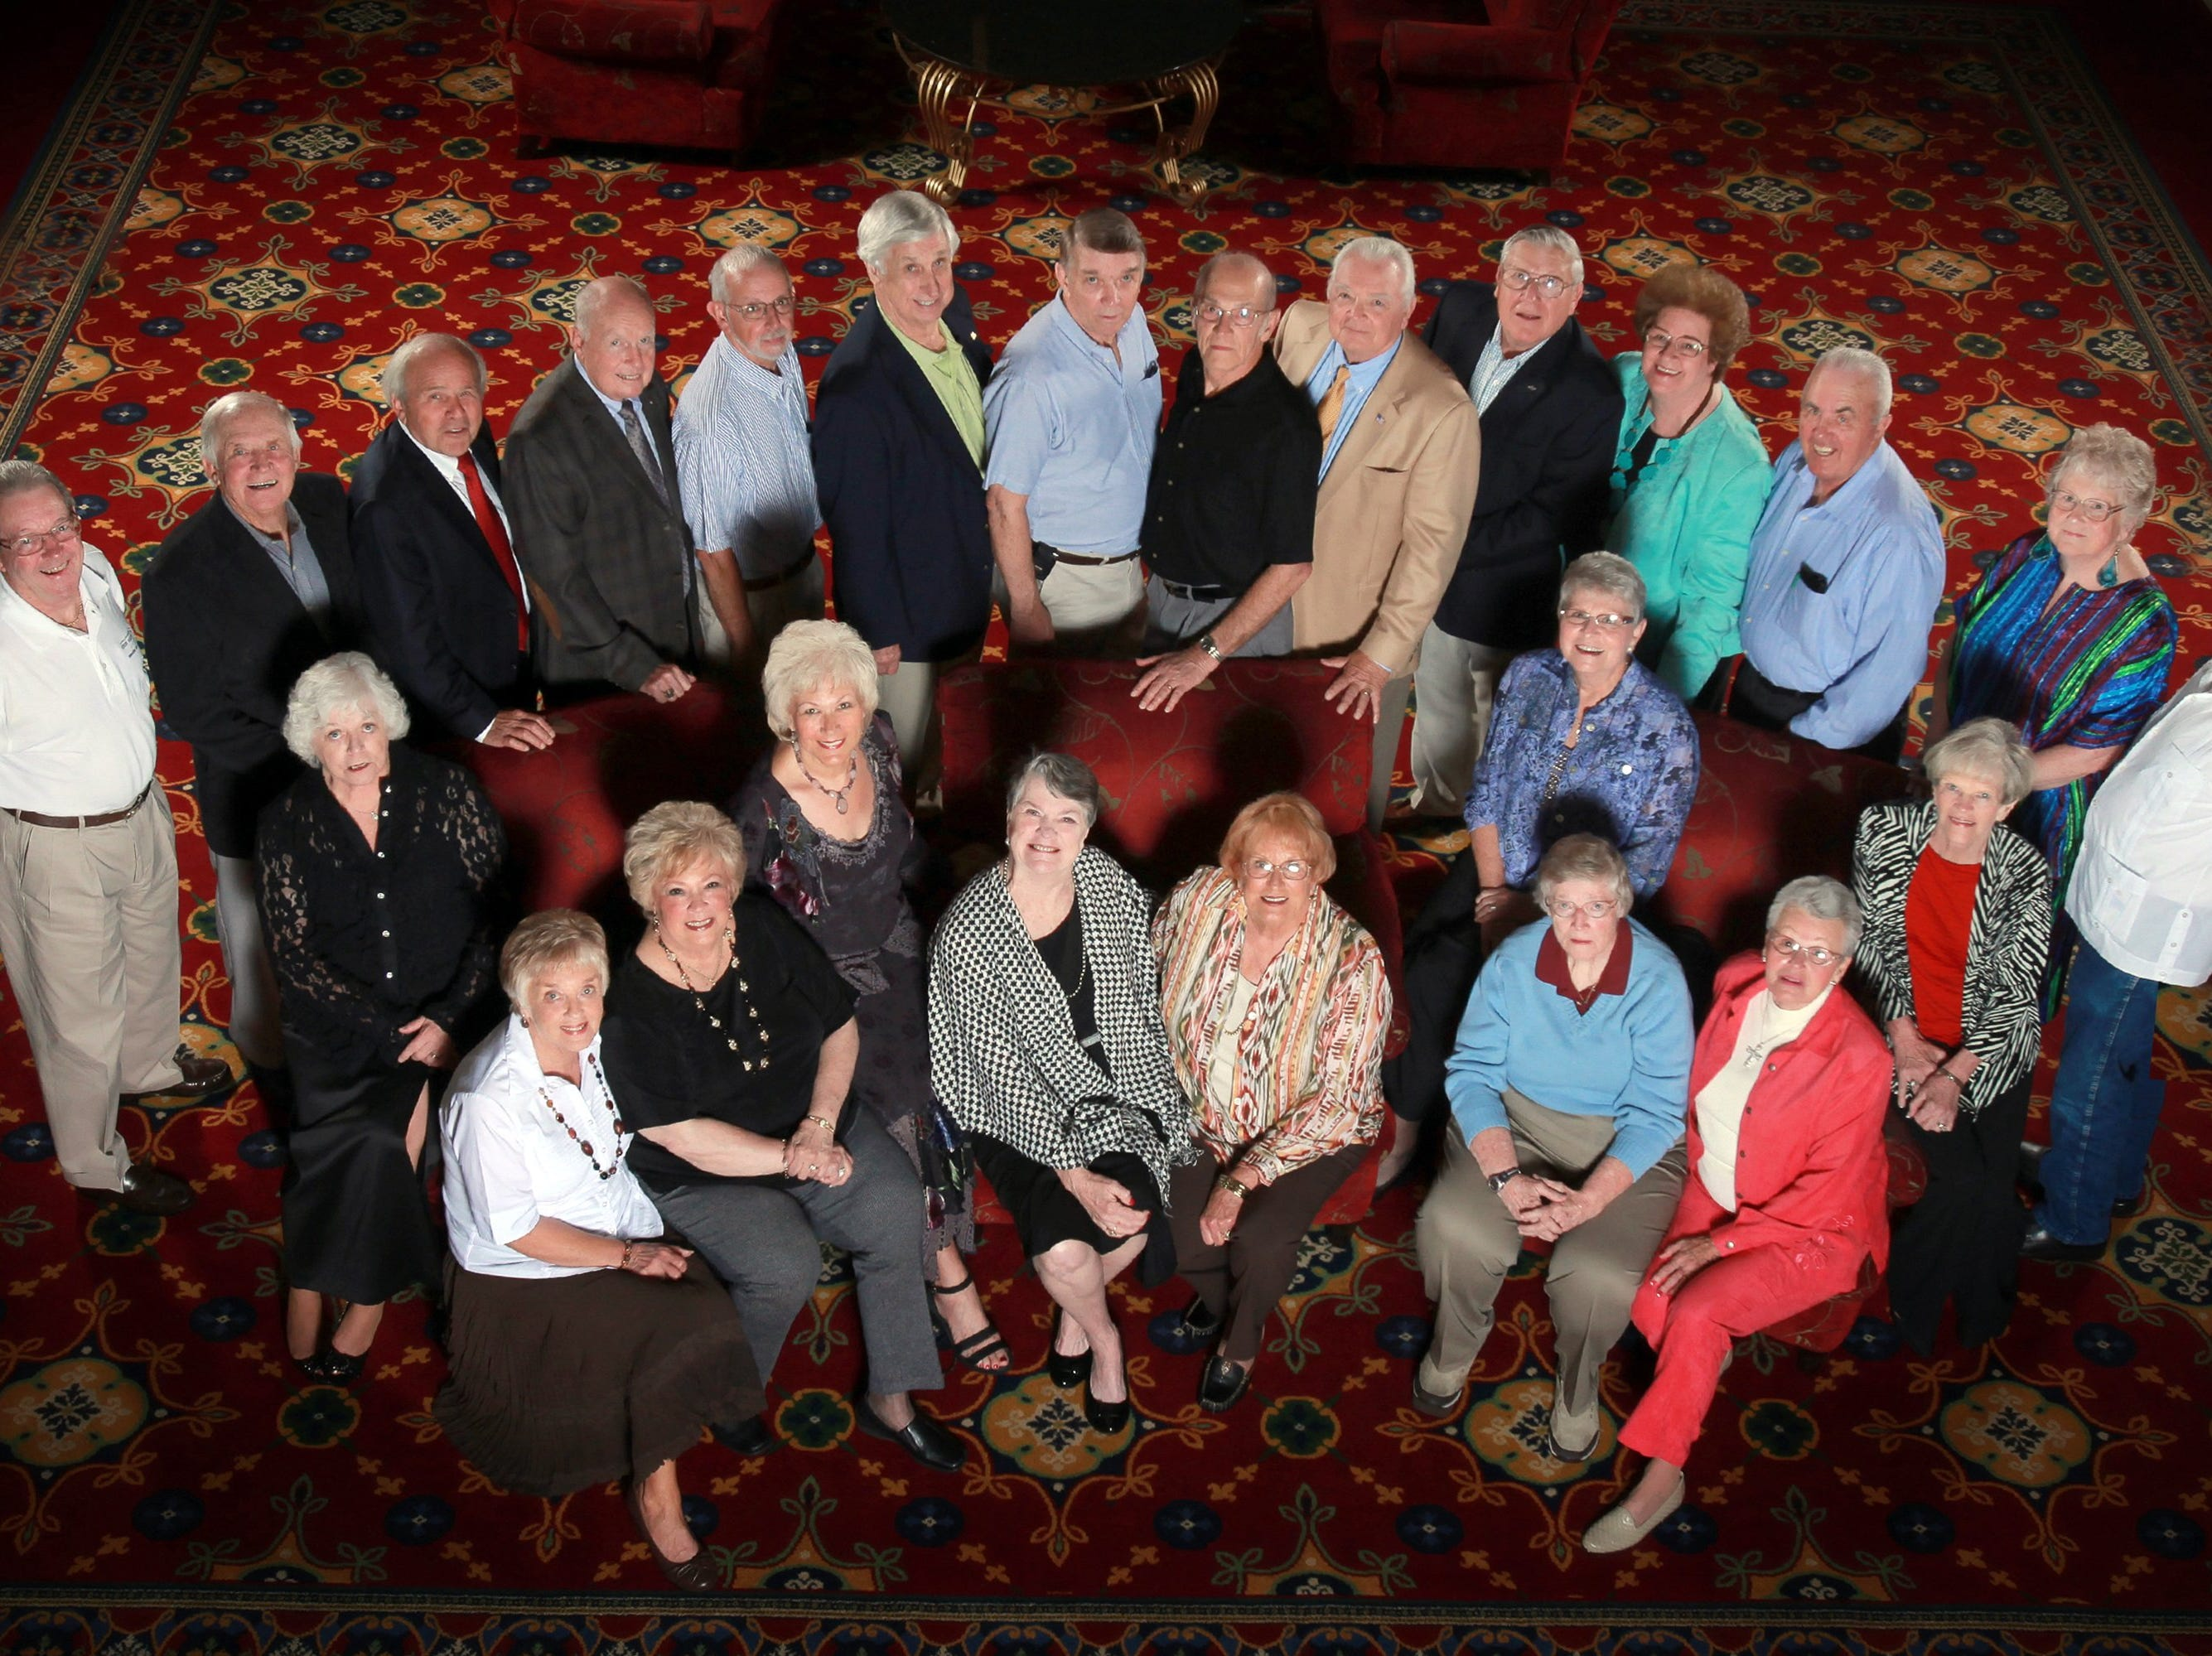 """Special to the News Sentinel Members of the South High School class of 1956 gathered for a reunion at the Marriott Hotel in Knoxville on recently. Attendees included, third row, from left, Hugh """"Sonny"""" White, Carroll """"Fuzzy"""" Jones, Dickie Sams, Gene Mowery, Pete Zurcher, Robert Arwood, Don Nelson, Glenn Anderson, Gary Smith, John Cooper, Nancy Holcombe Sellers, Bill Berrier, Mary Wright McHarris, Bill Andre; second row, Judy Waller Moon, Eloise Lowery, Carol Ann Baumgardner Blythe, Ruth Ann Howard Berrier; first row, Ann Bales Harrison, Lemoyne Houck Clapp, Patty Stinnette Terango, Gerra Lynn Davis Mary, Mariana Davis, Dottie Crumbliss Householder."""